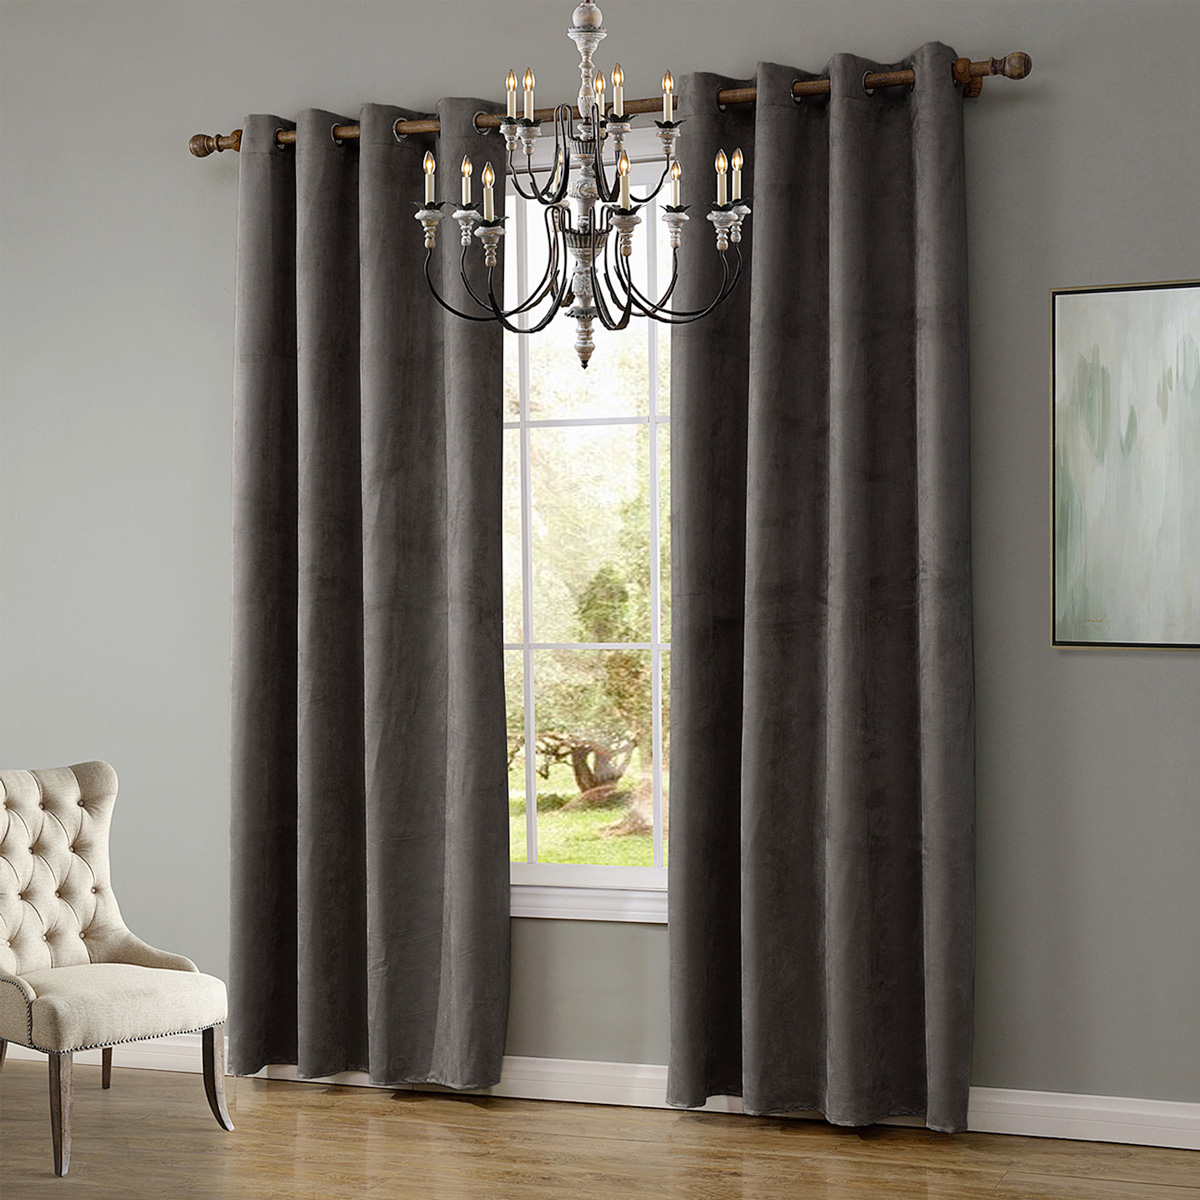 6 Colors Solid Colors Blackout Curtains For Living Room Bedroom Modern Window Curtains Thermal Curtain For Window Home Decor Grommet Drapes Bedroom Decorations Grey Buy Sell Online Best Prices In Srilanka